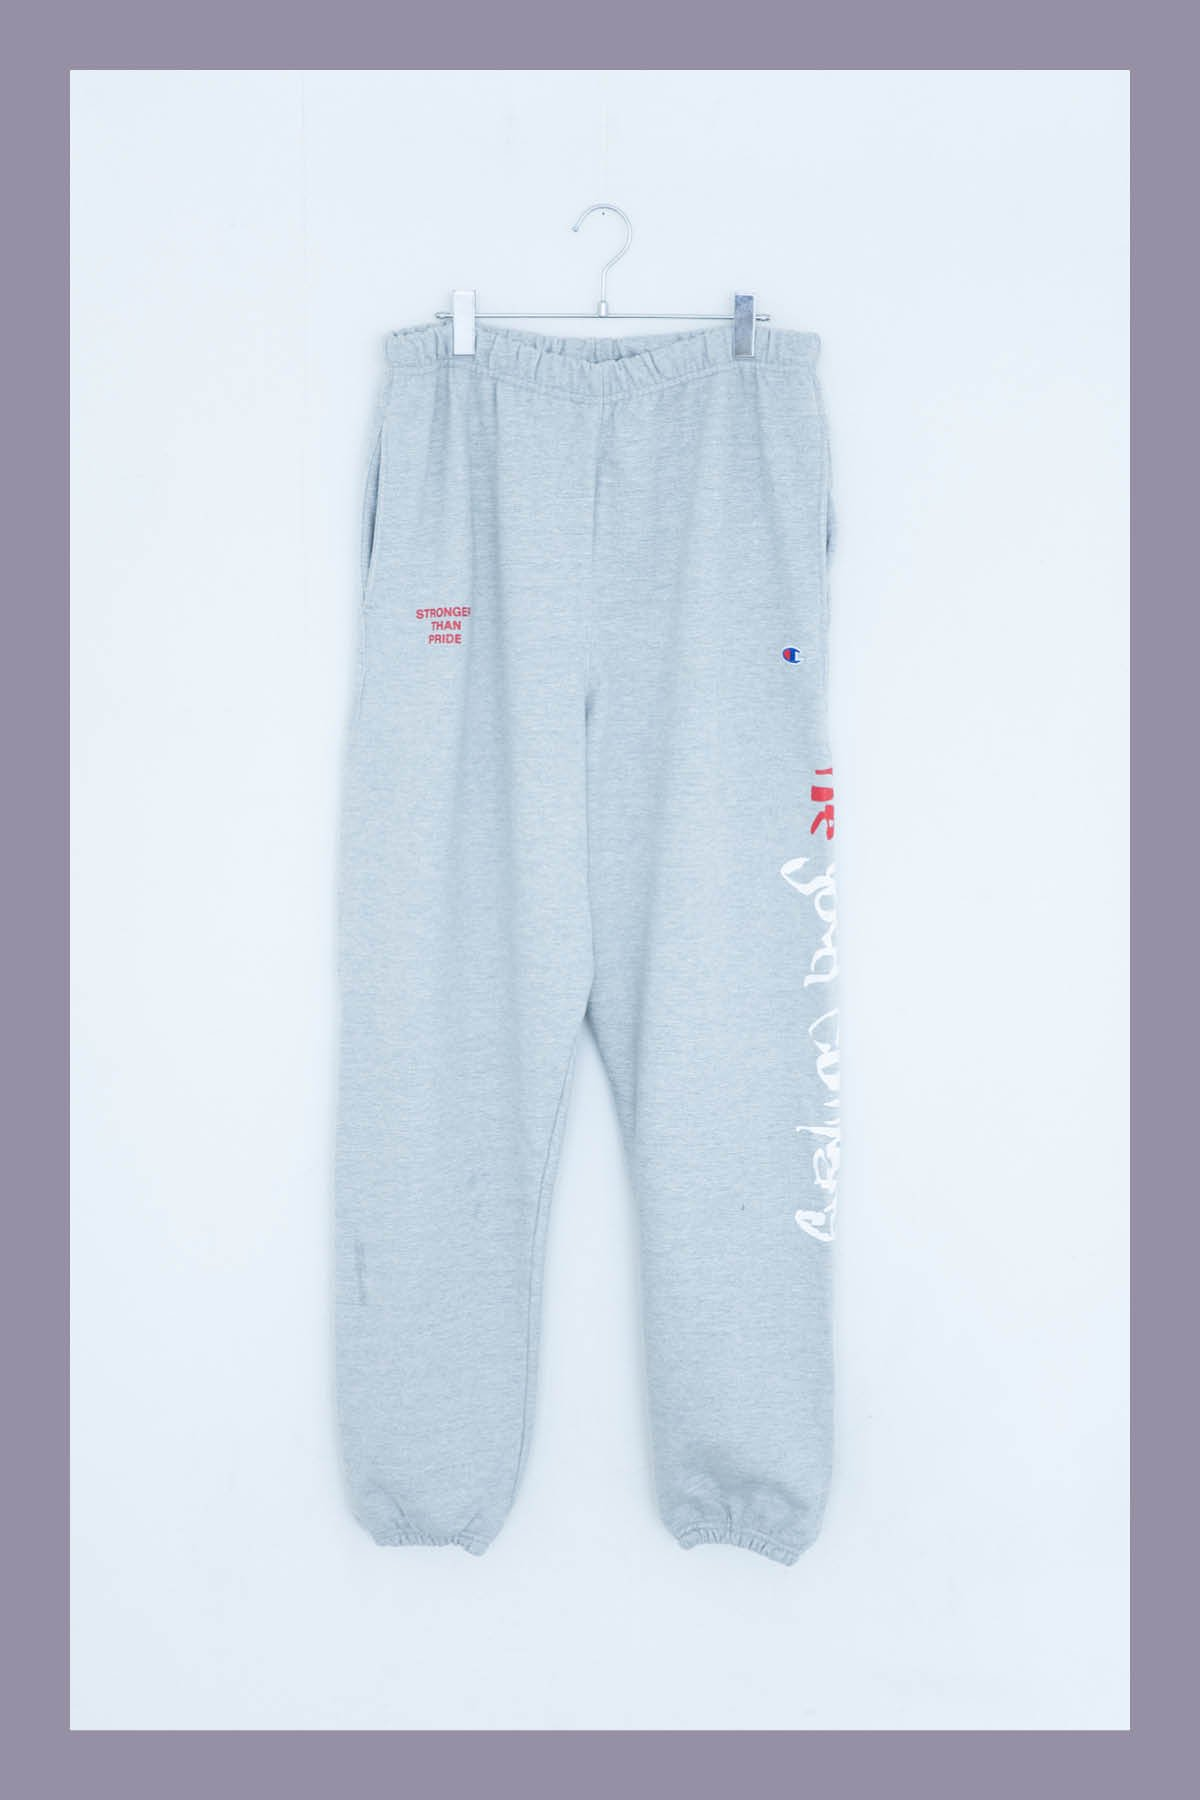 THE GOOD COMPANY / STRONG SWEAT PANTS